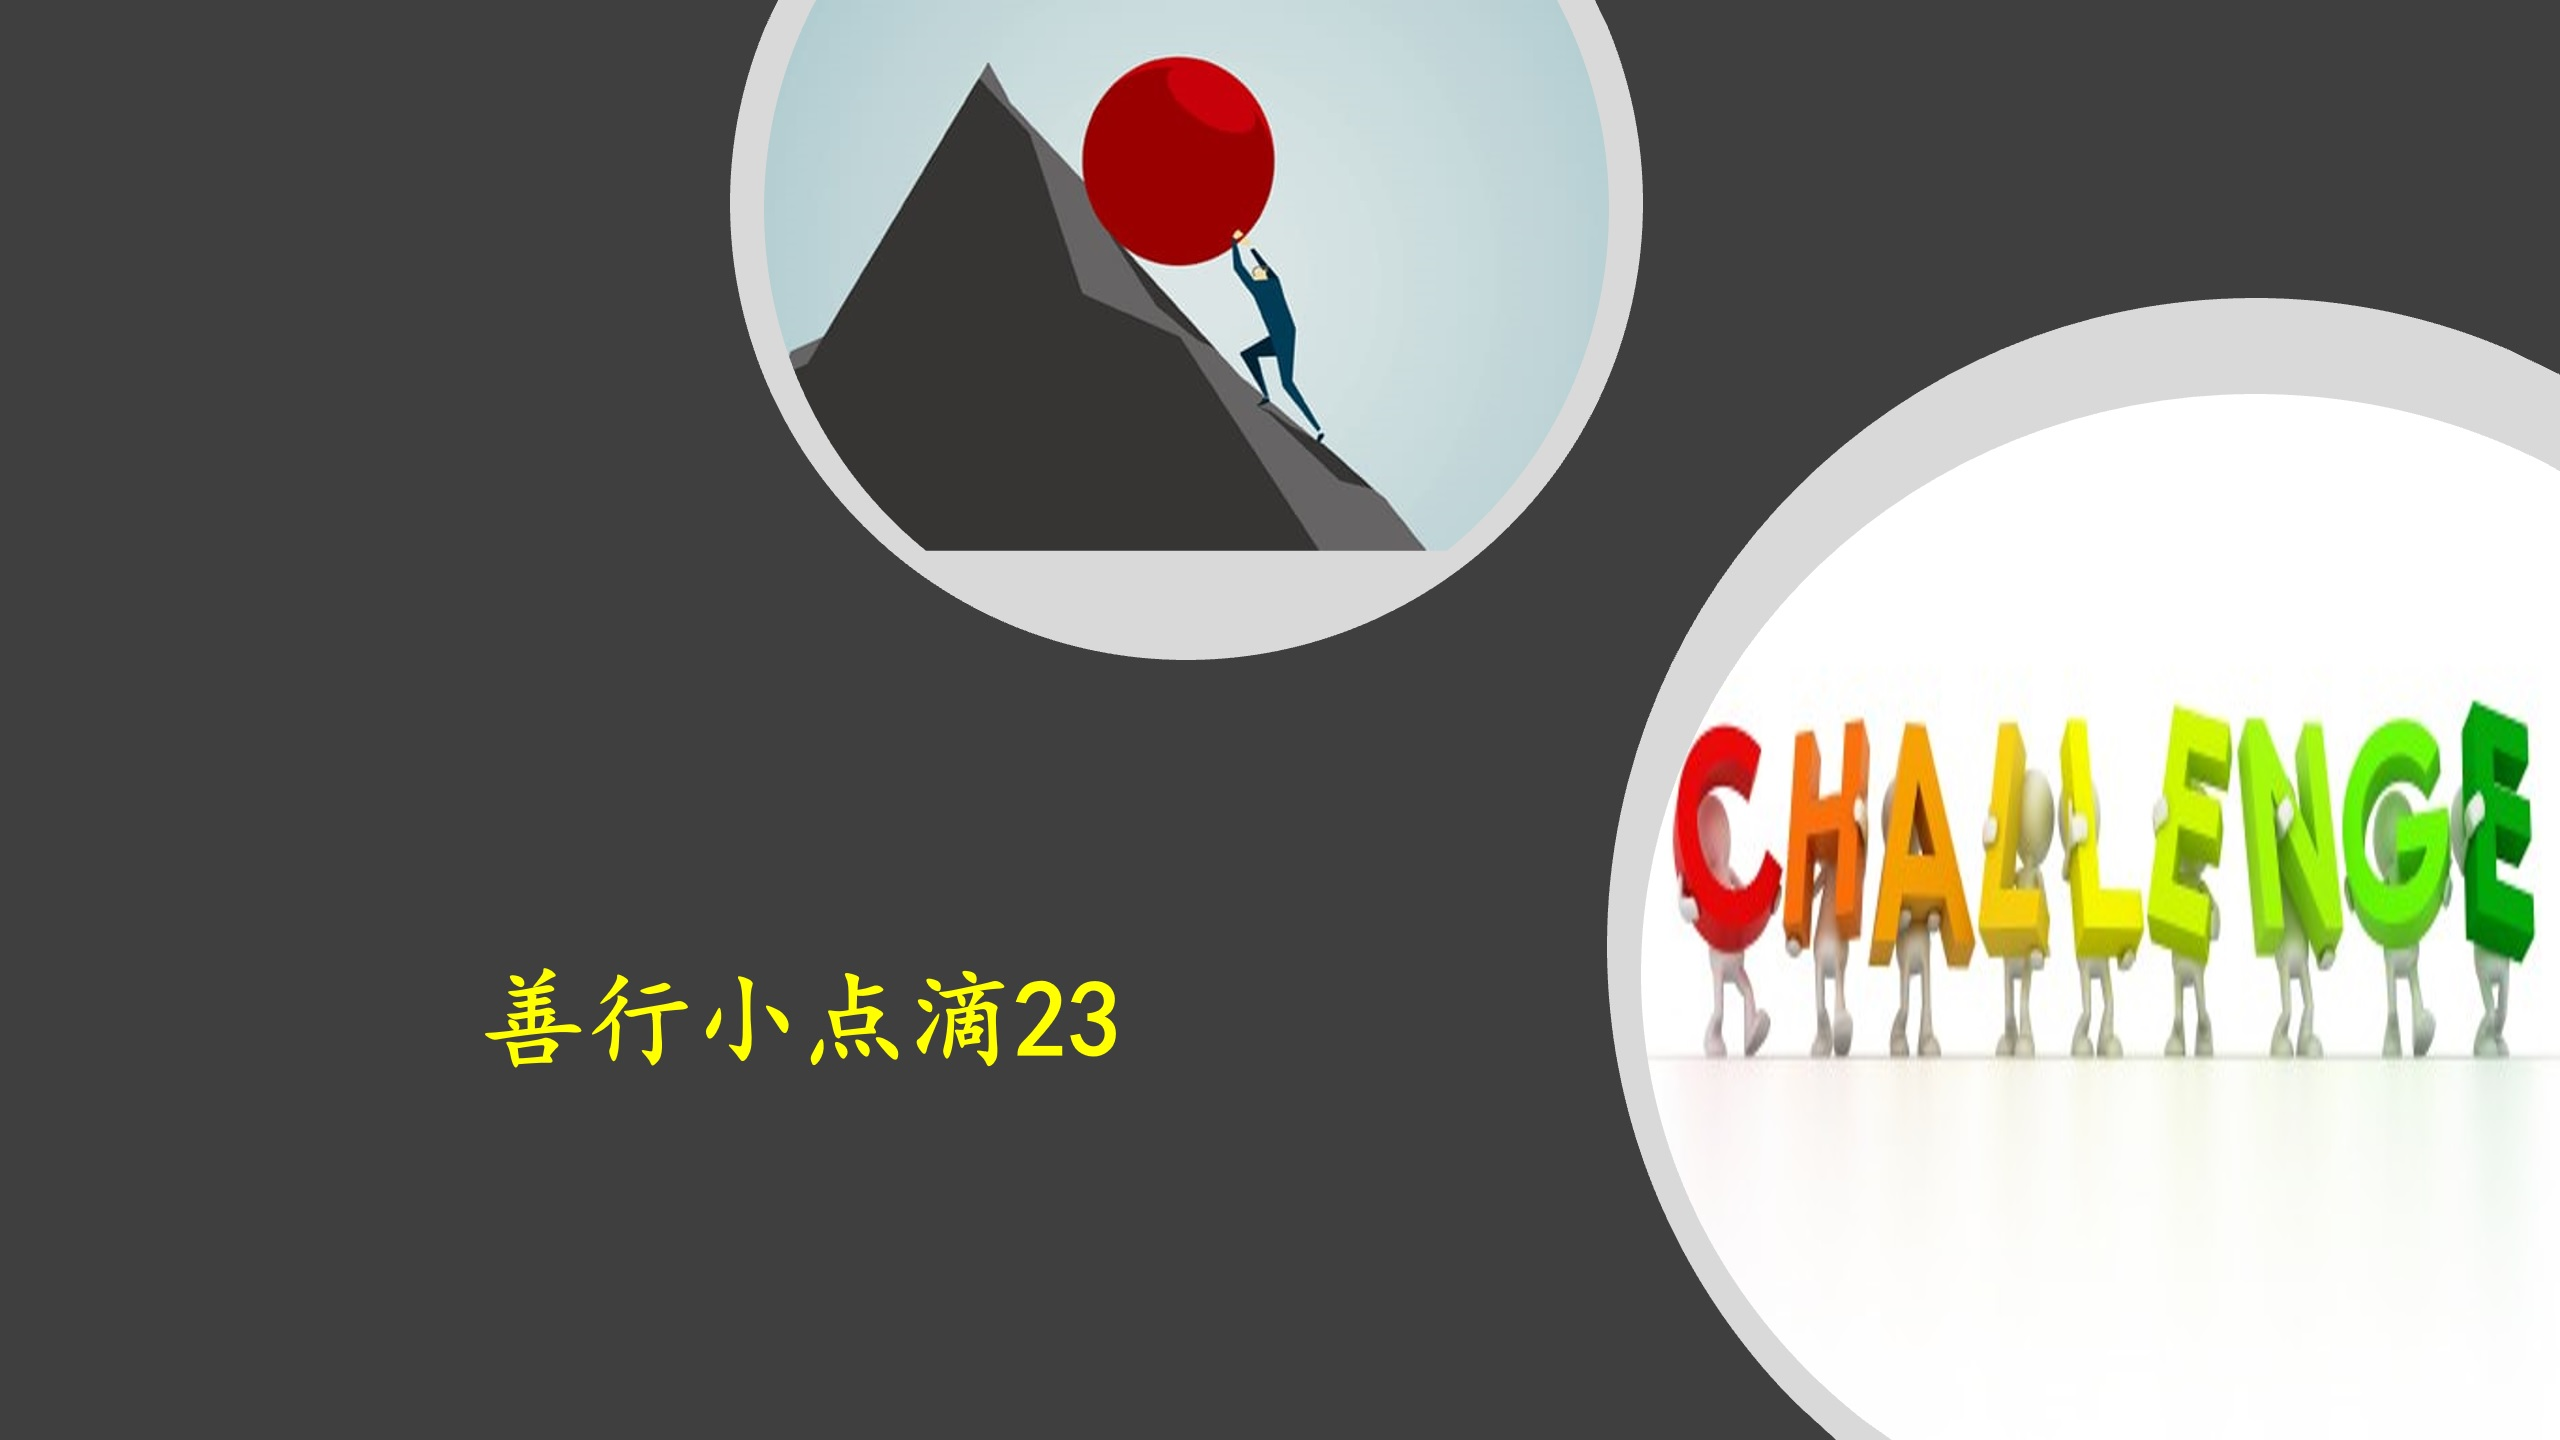 """VIRTUOUS ACT SHARING 23"" STAY HEALTHY STAY POSITIVE 42 善行小点滴分享 23 – 打包正能量 好好护健康  08.07.2020"